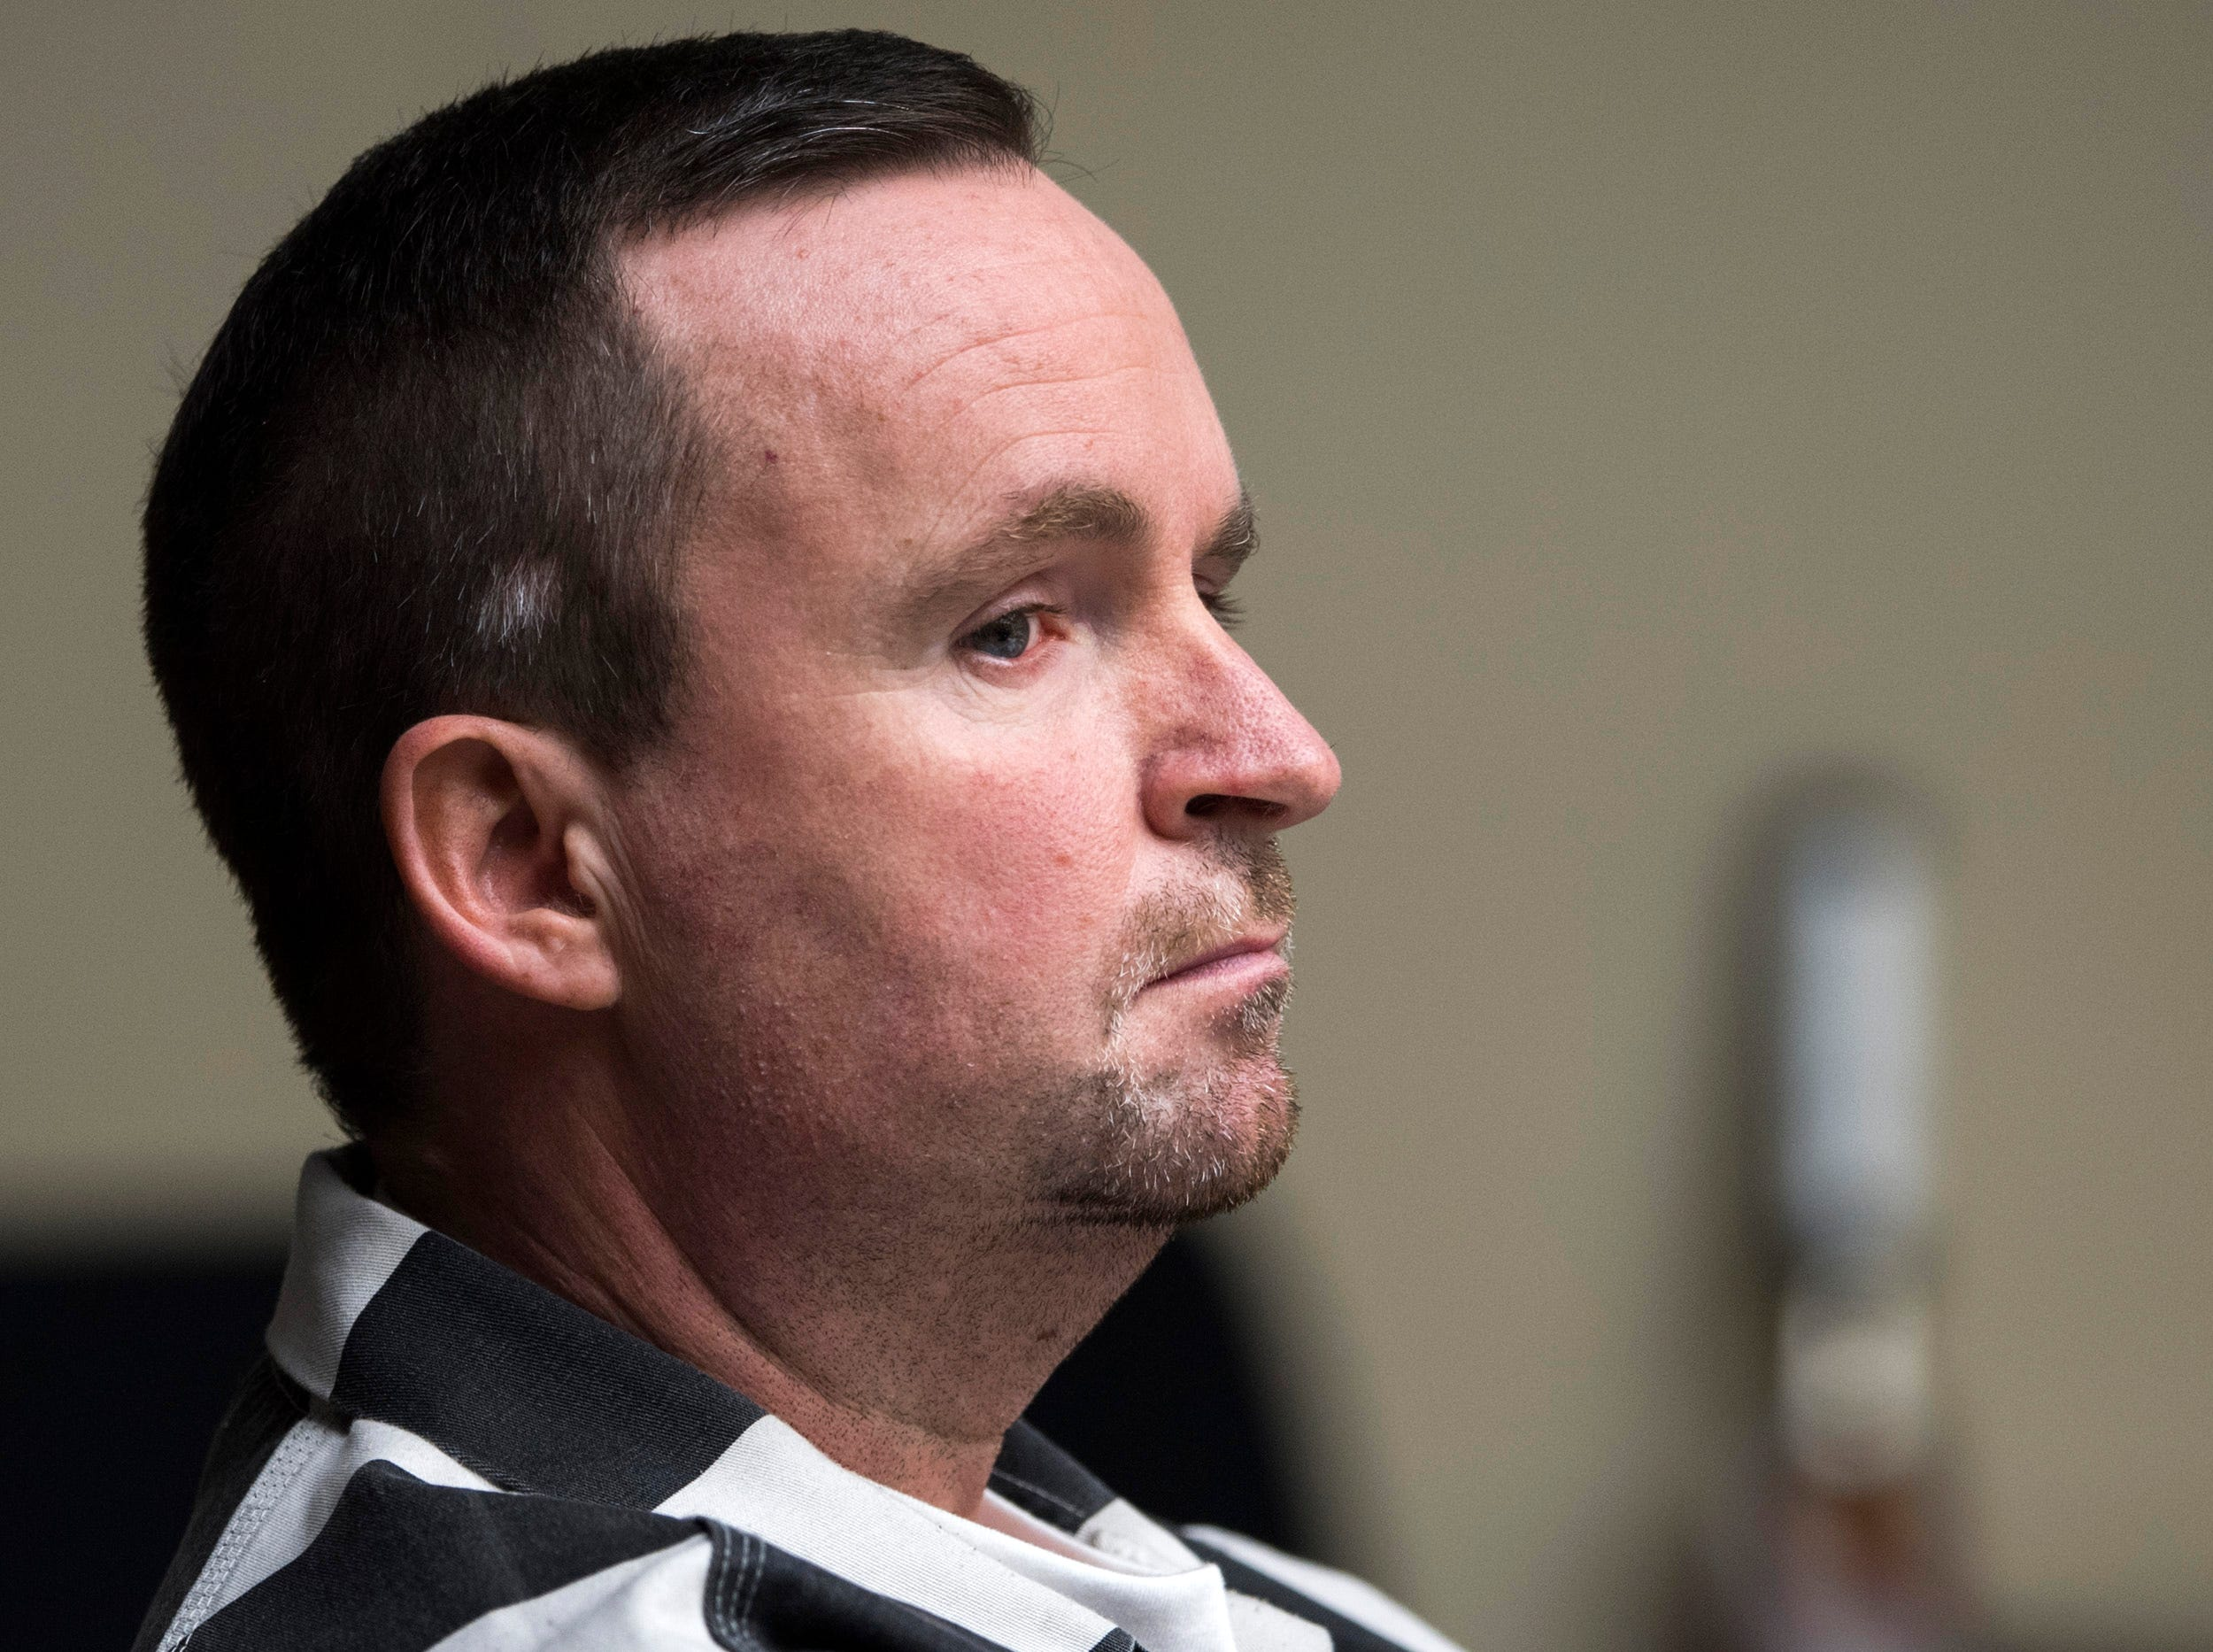 David Lynn Richards during his sentencing hearing in Knox County Criminal Court on Thursday, May 9, 2019.